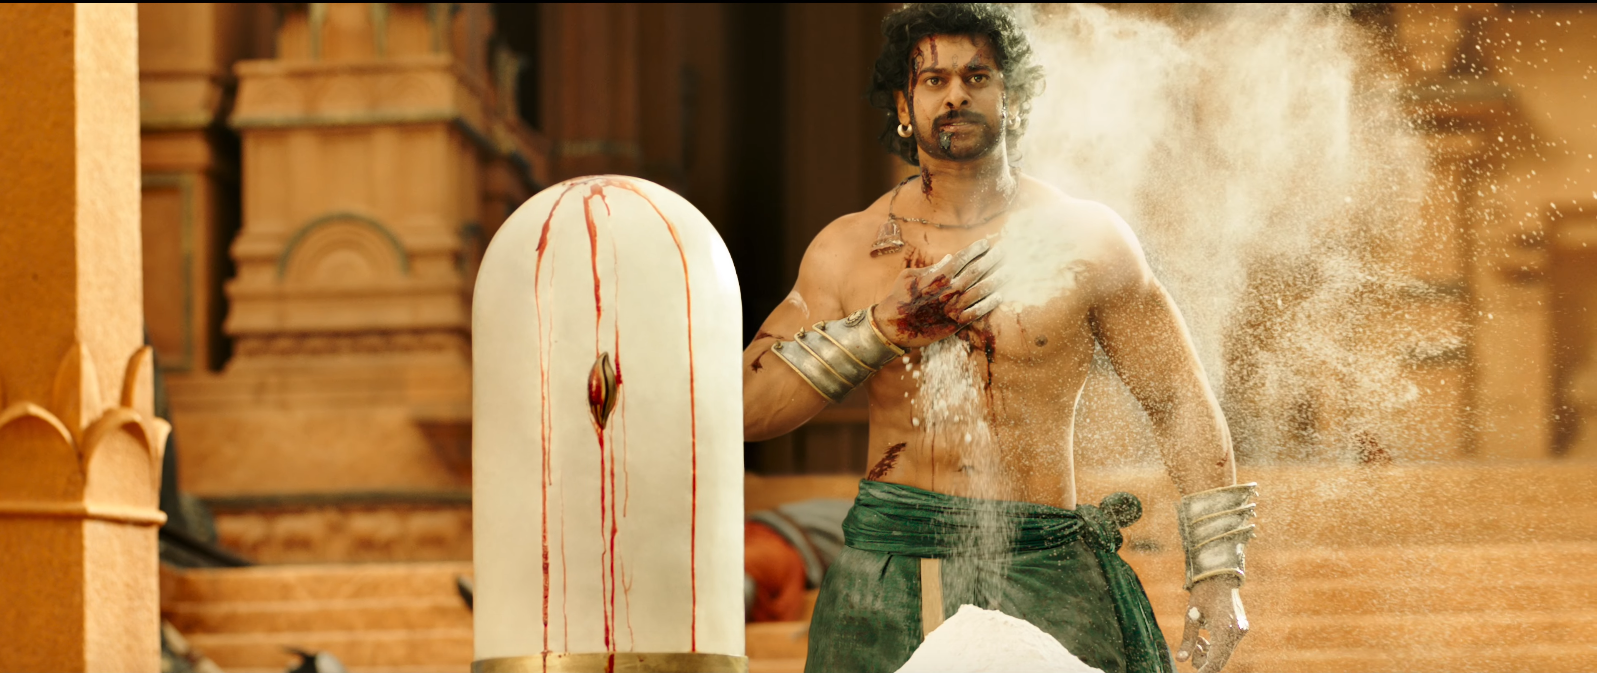 prabhas changed his physical appearance with his trainer in bahubali